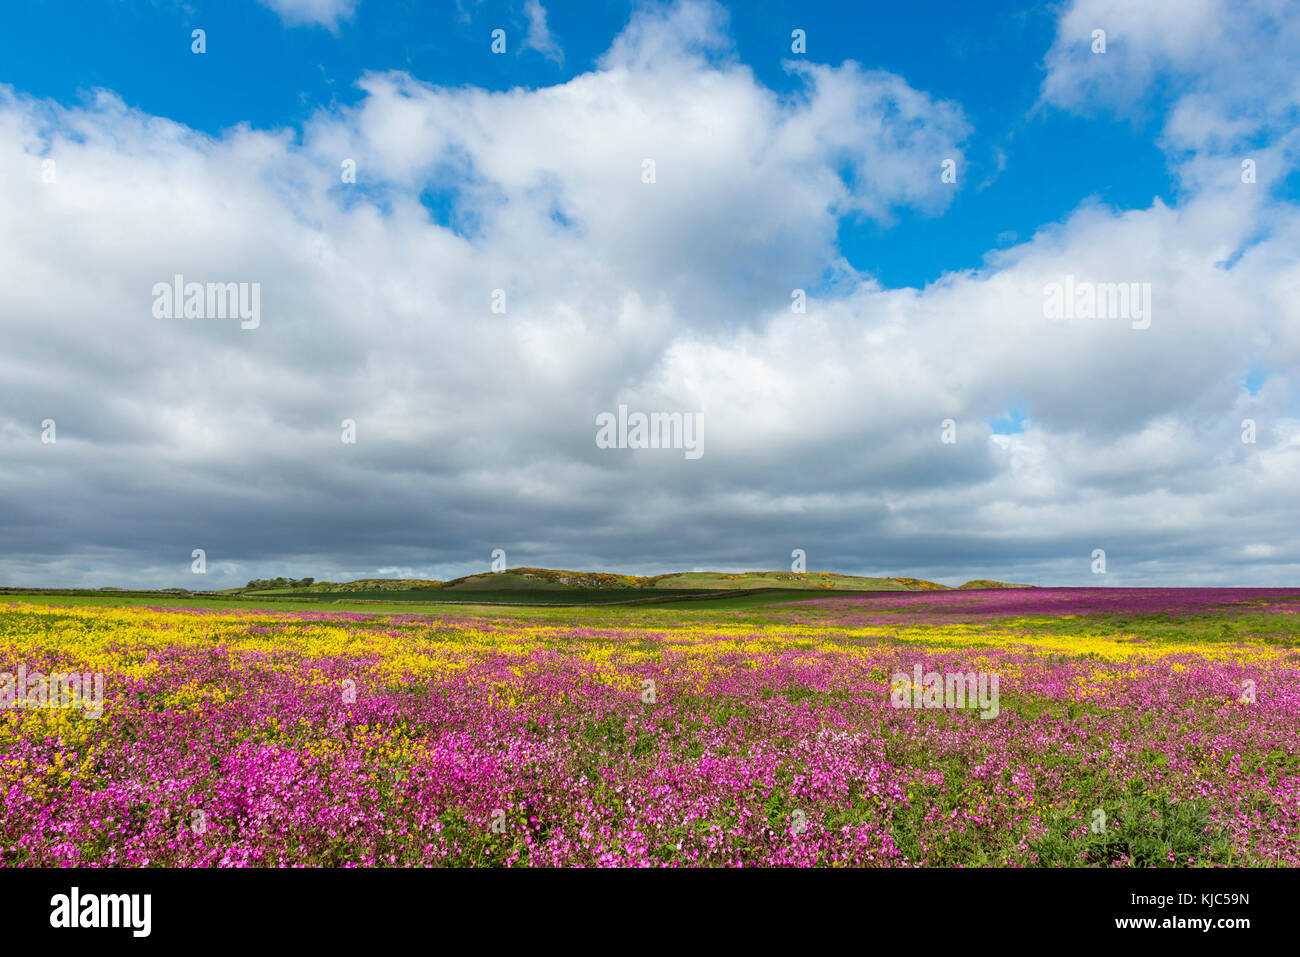 Field of blooming pink flowers and canola with dramatic clouds in sky at Bamburgh in Northumberland, England, United - Stock Image